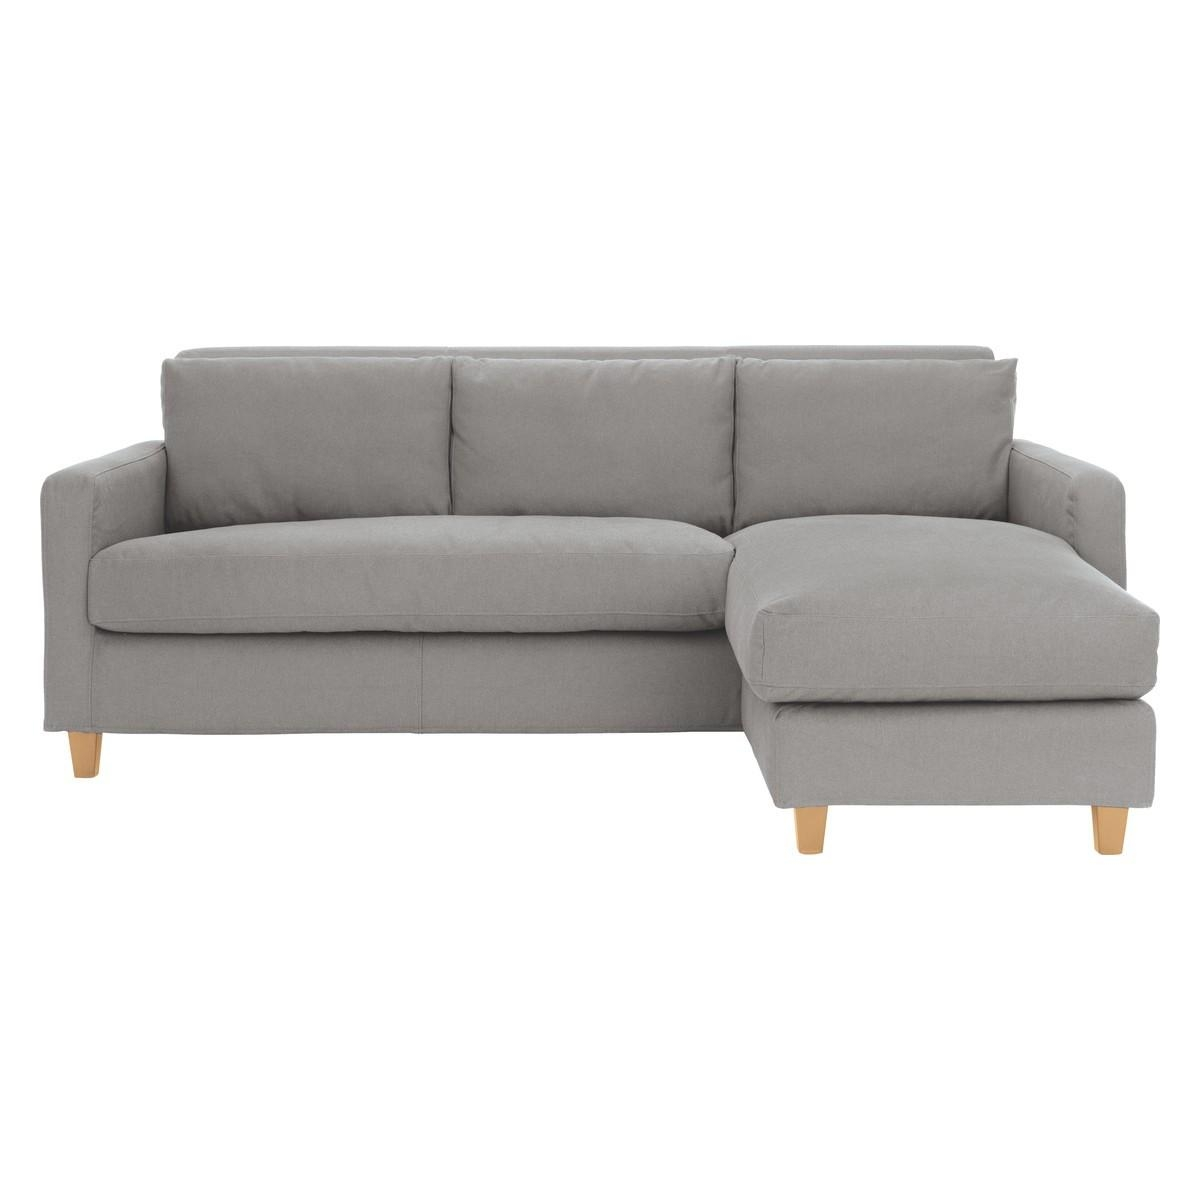 Sofas Center : Grey Sofa With Chaise Sofas Center Fascinating With Regard To Chaise Sofas (View 17 of 20)